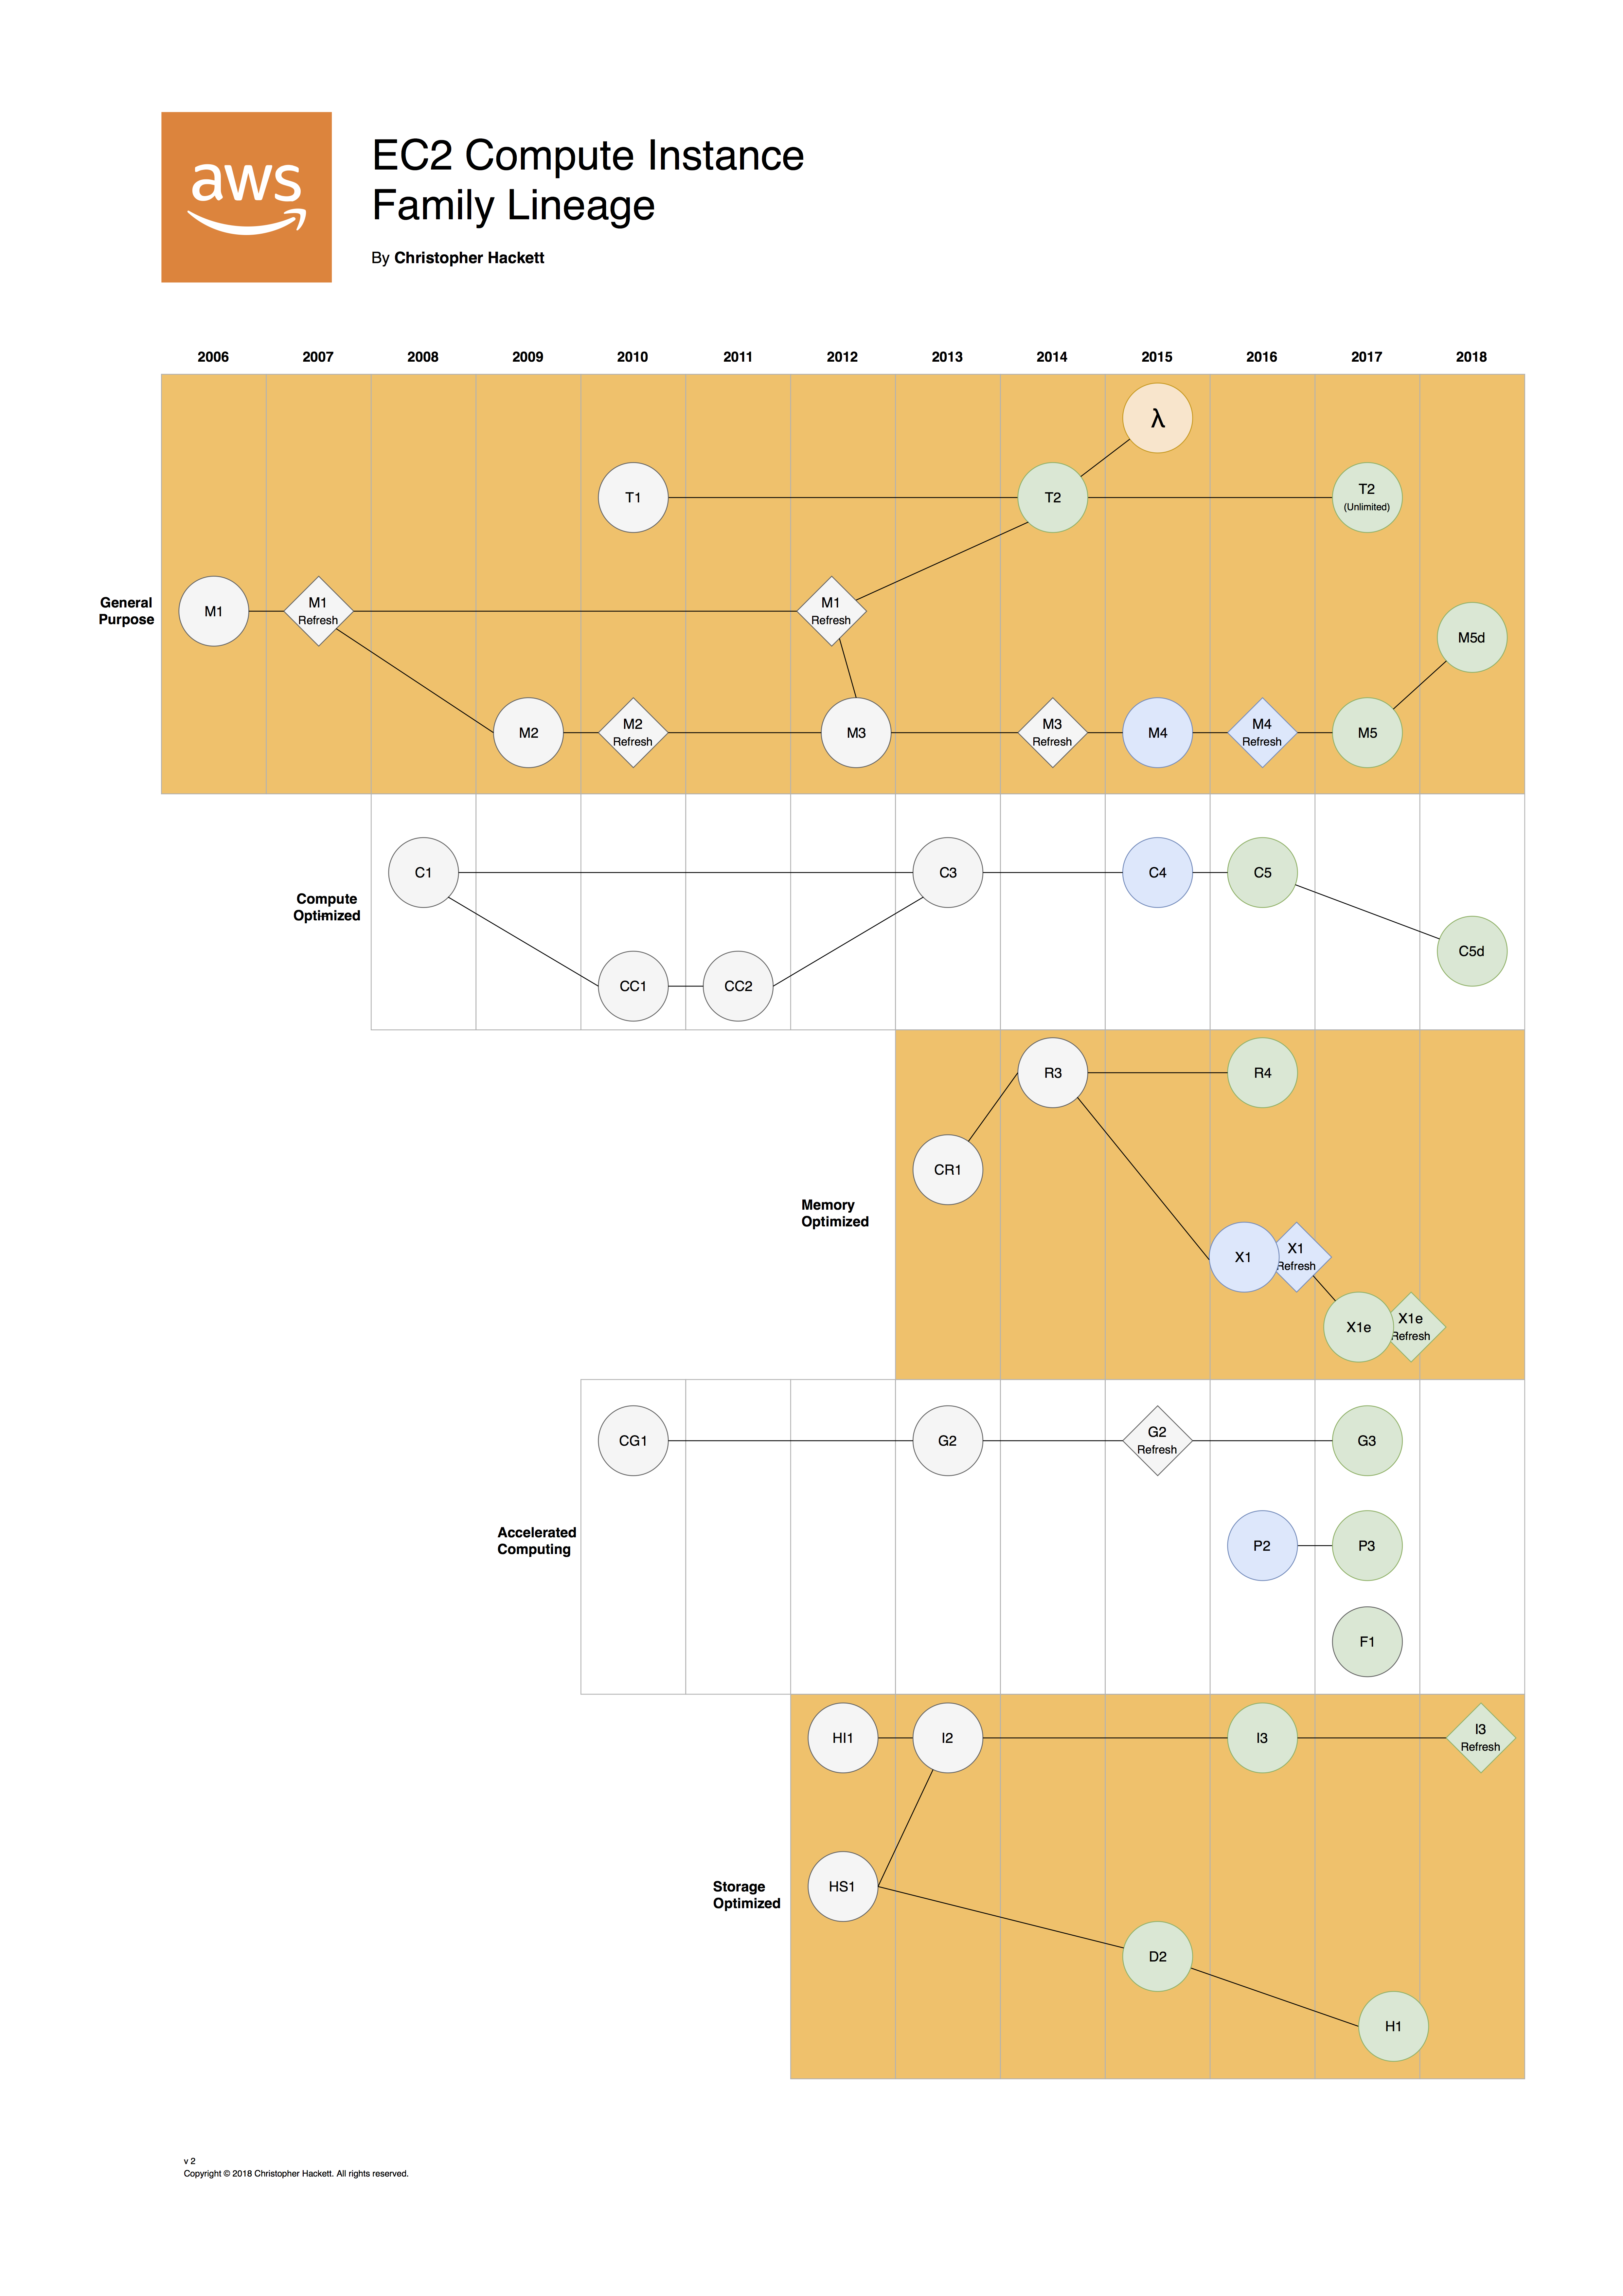 EC2 Compute Instance Family Lineage